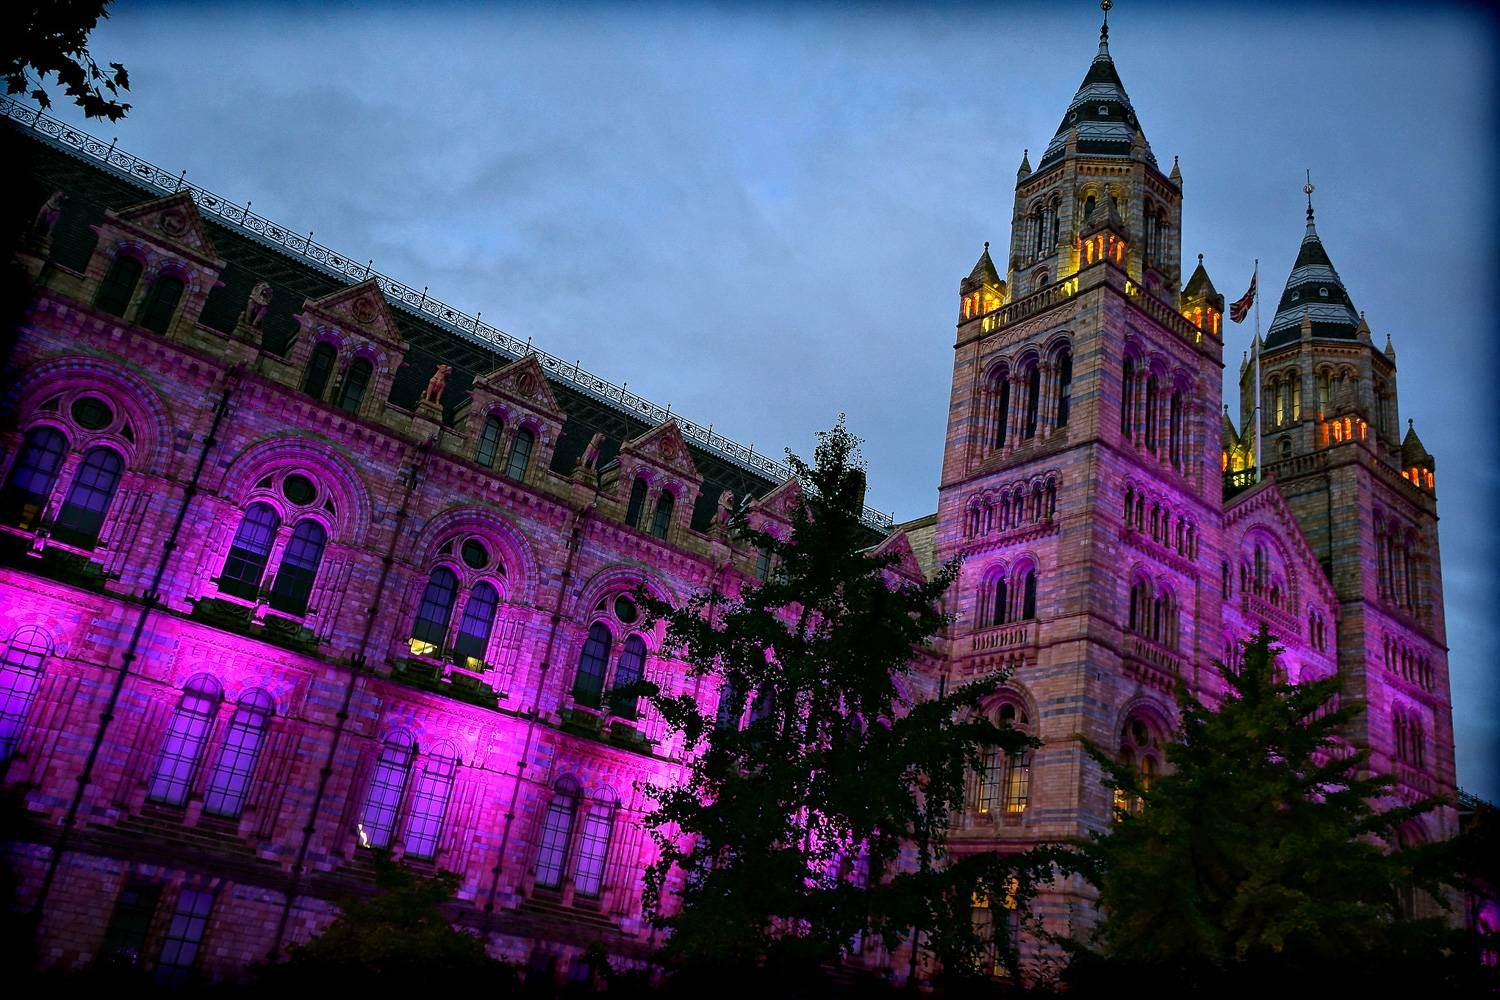 Image of the outside of London's Natural History Museum lit up with purple lights.